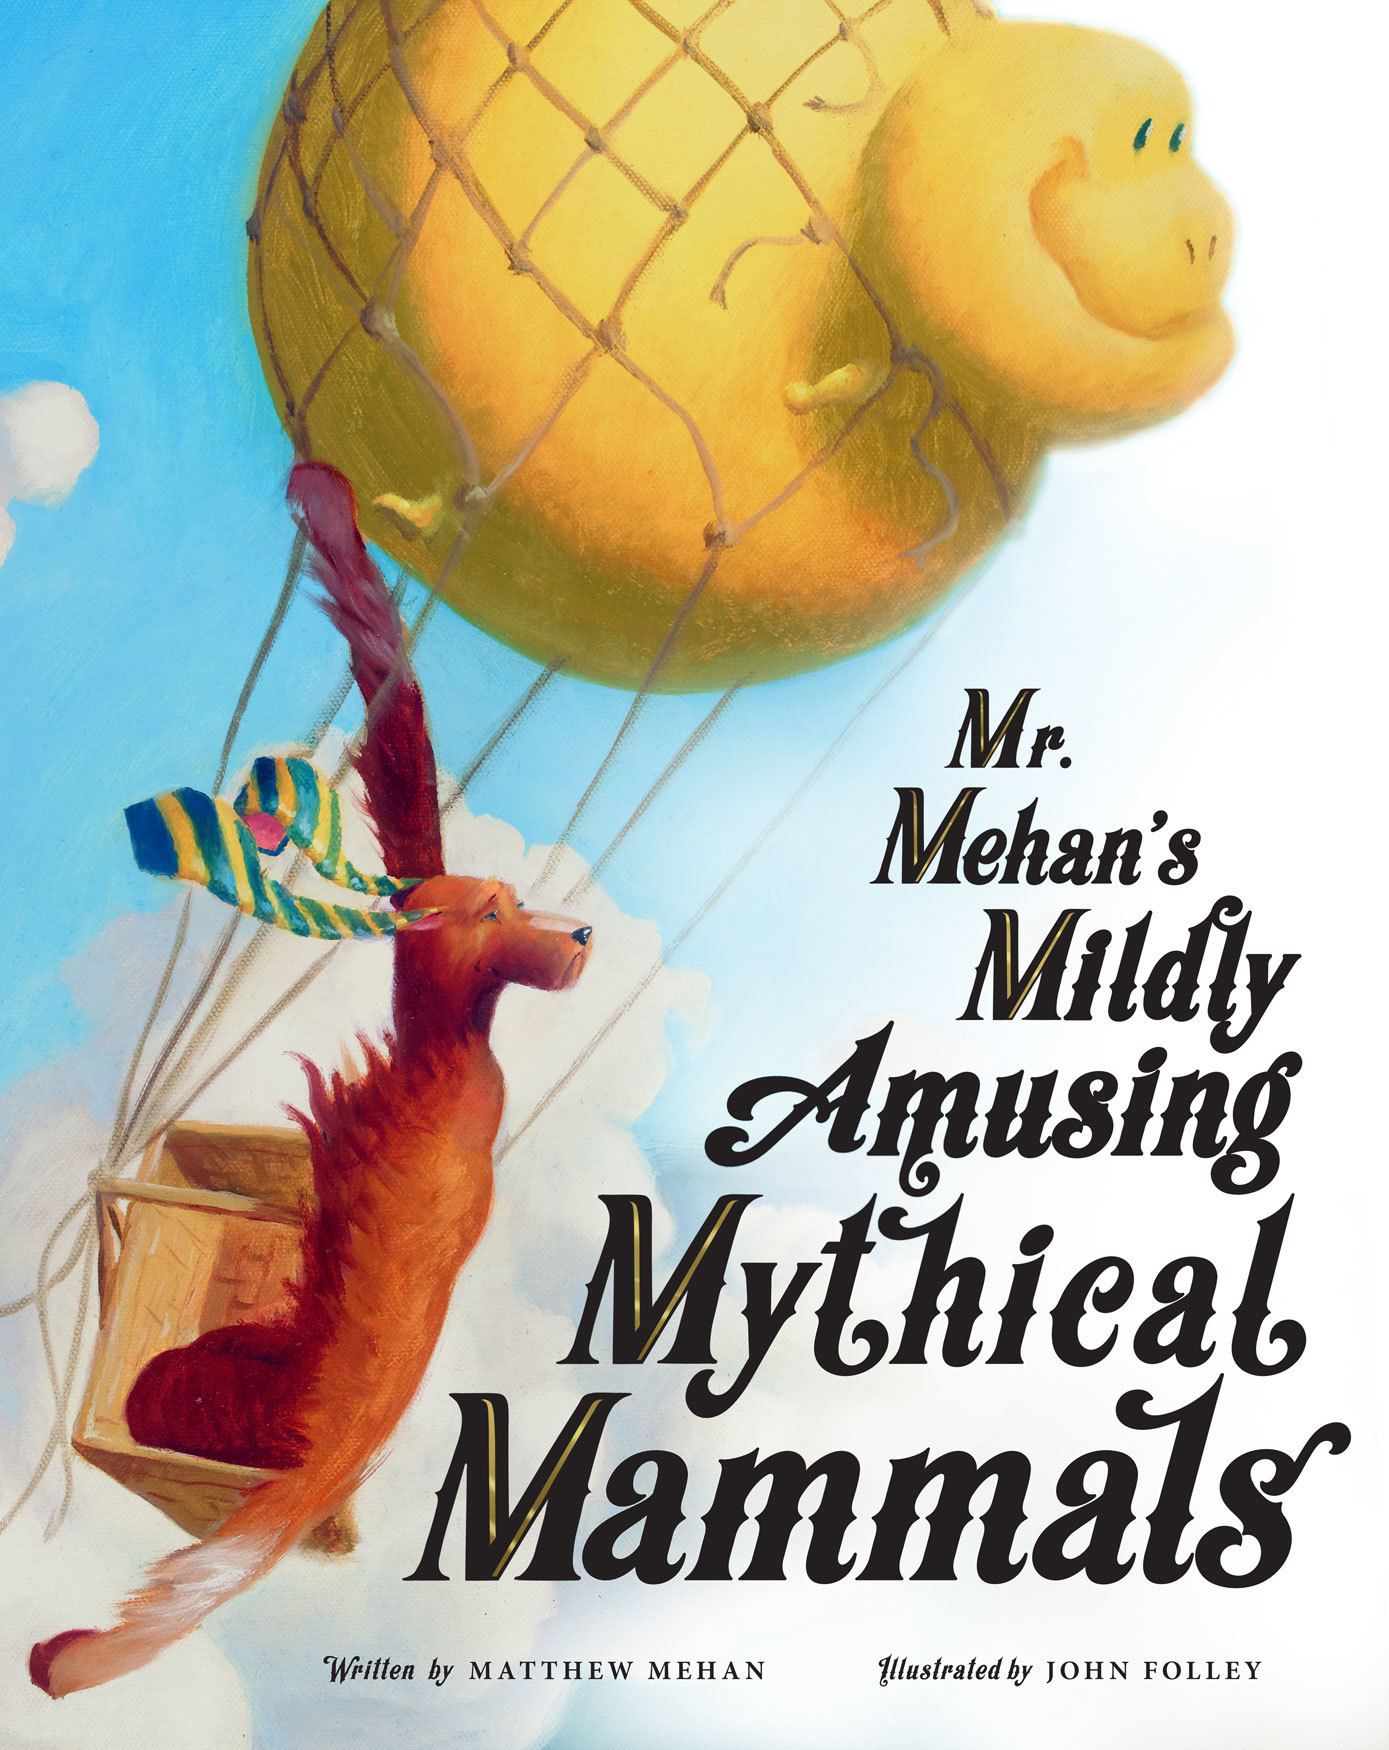 Mr. Mehan's Mildly Amusing Mythical Mammals